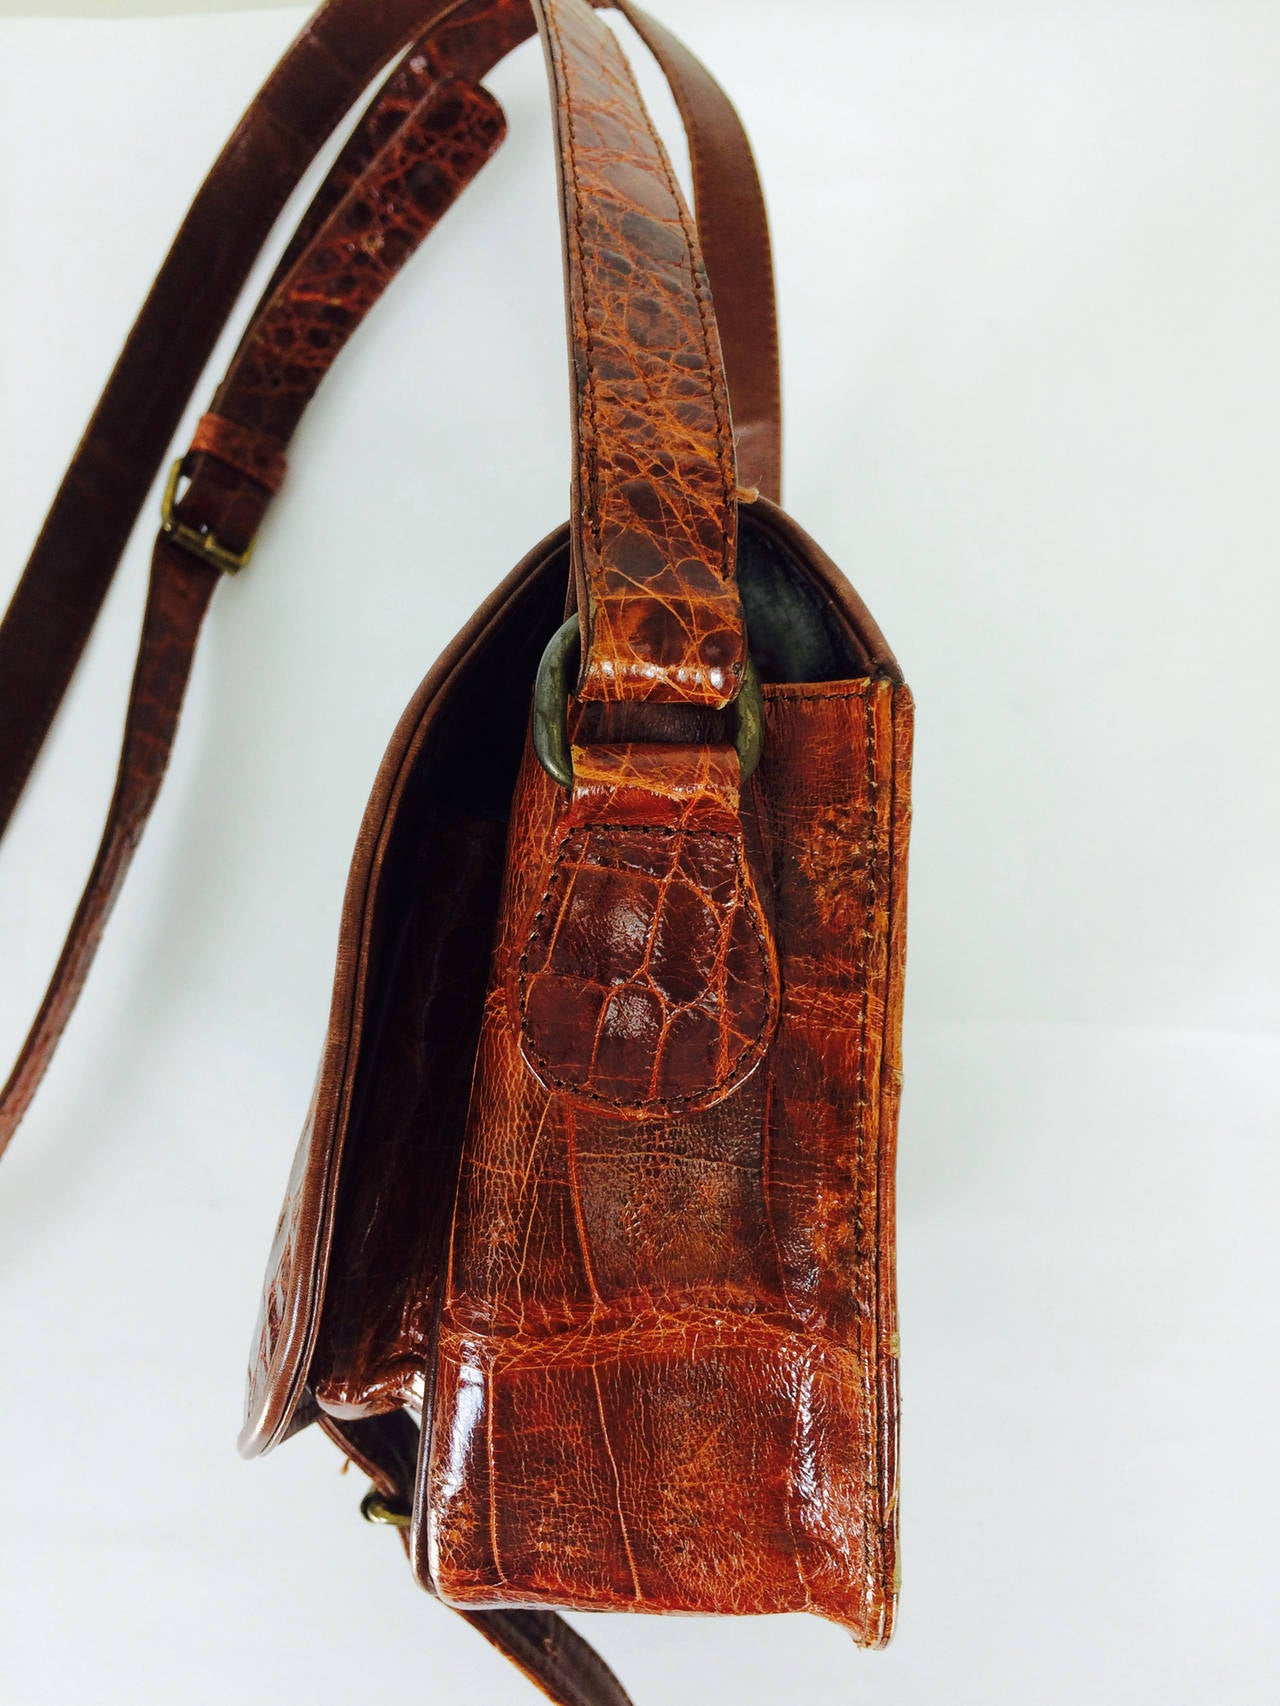 Saddle bag handbag cognac leather faux alligator Neiman Marcus 1980s 3